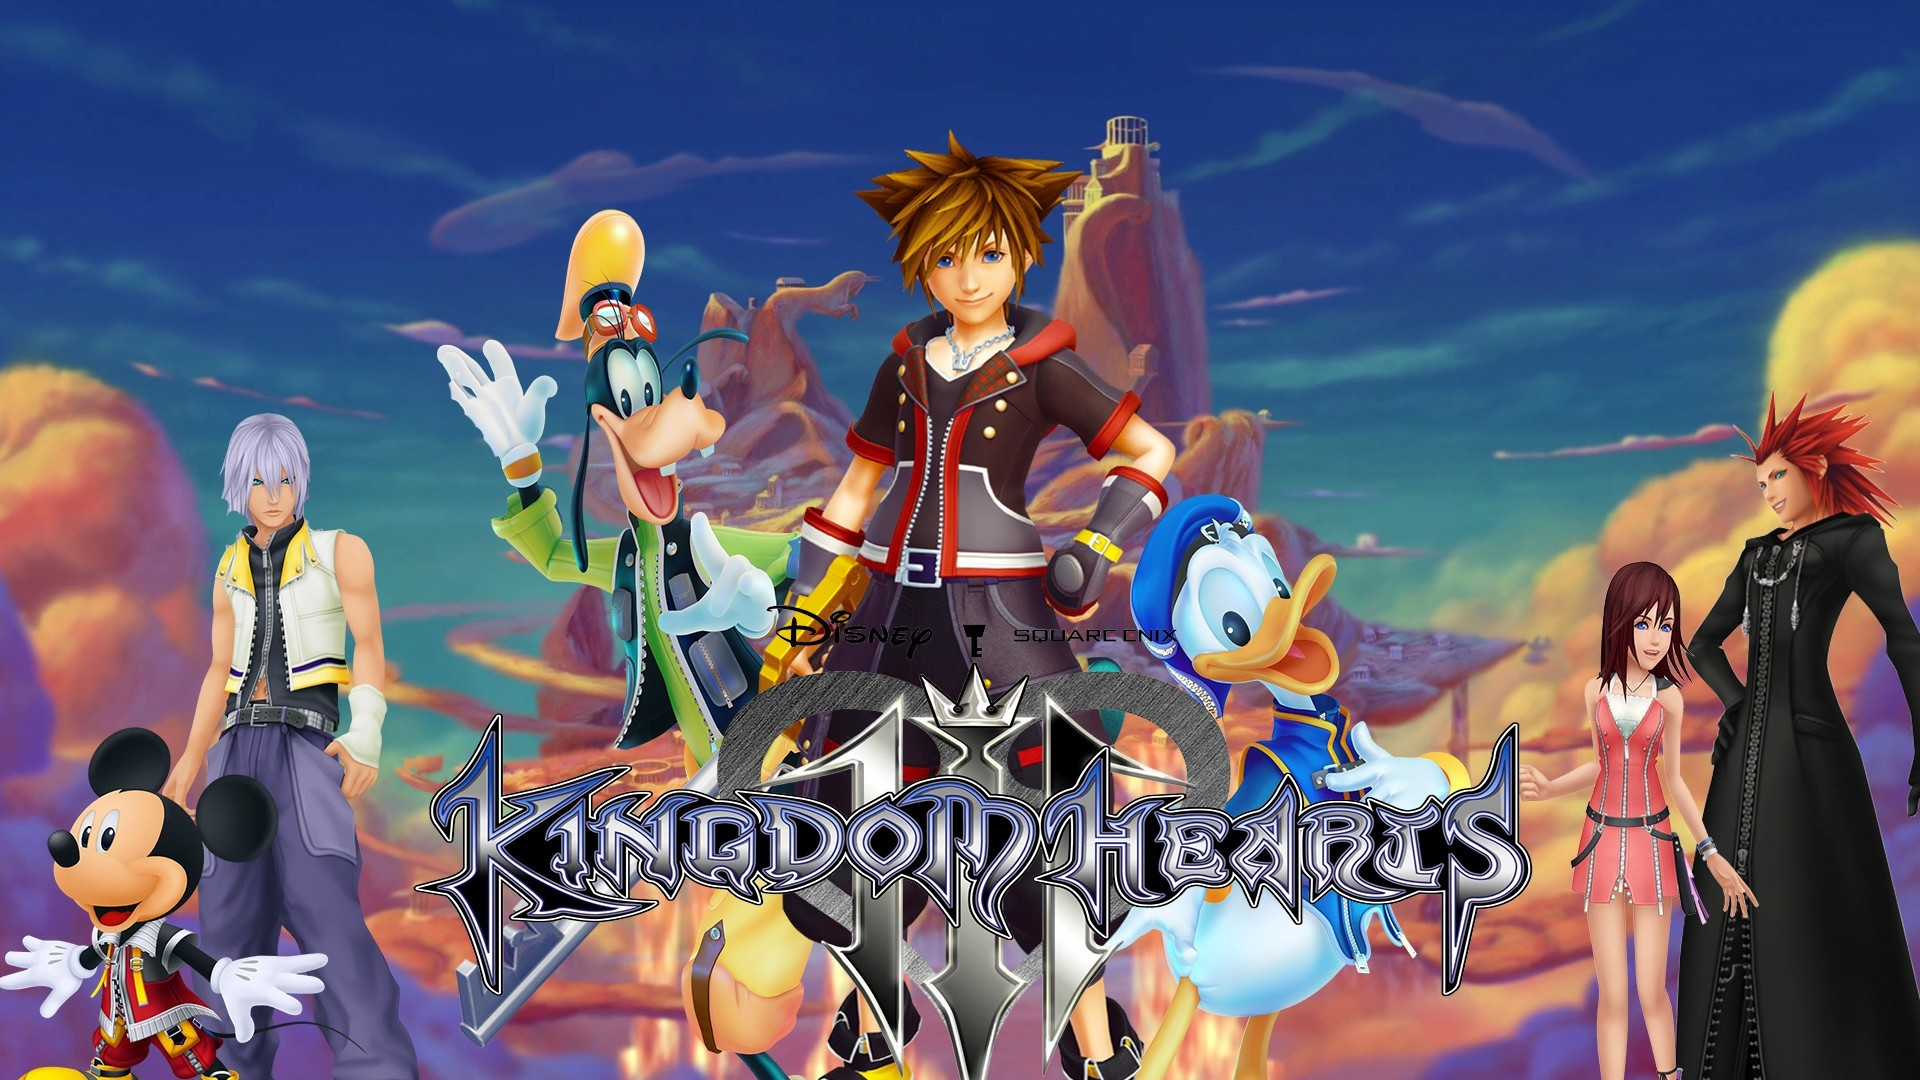 Kingdom Hearts 3 Free Wallpaper and Background